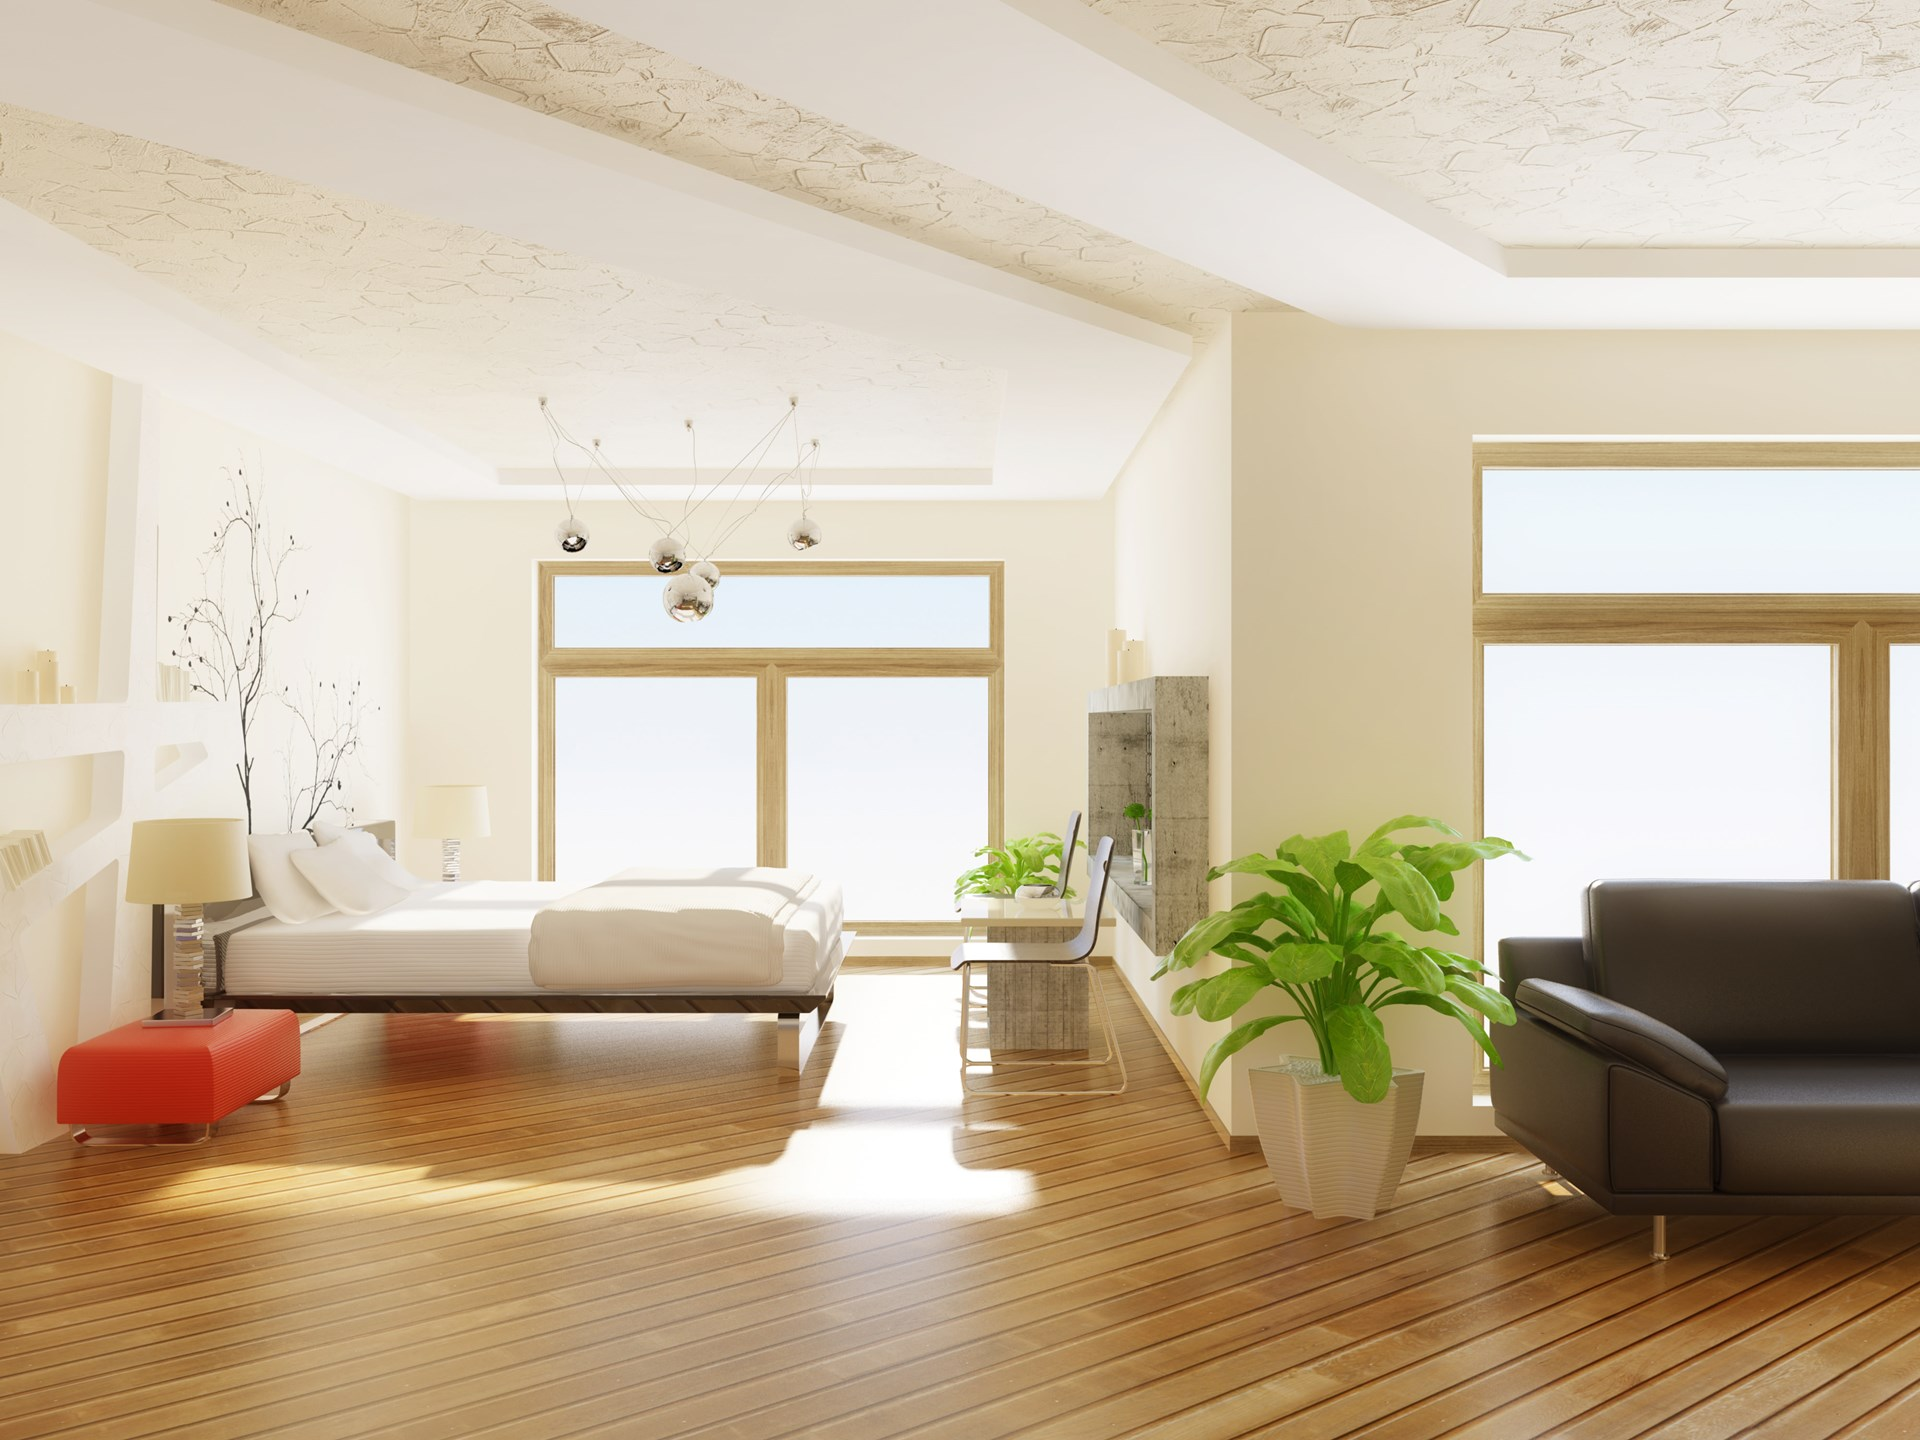 Miraculous Why I Rent A Tiny Apartment Rather Than Buy A Big Home Download Free Architecture Designs Embacsunscenecom